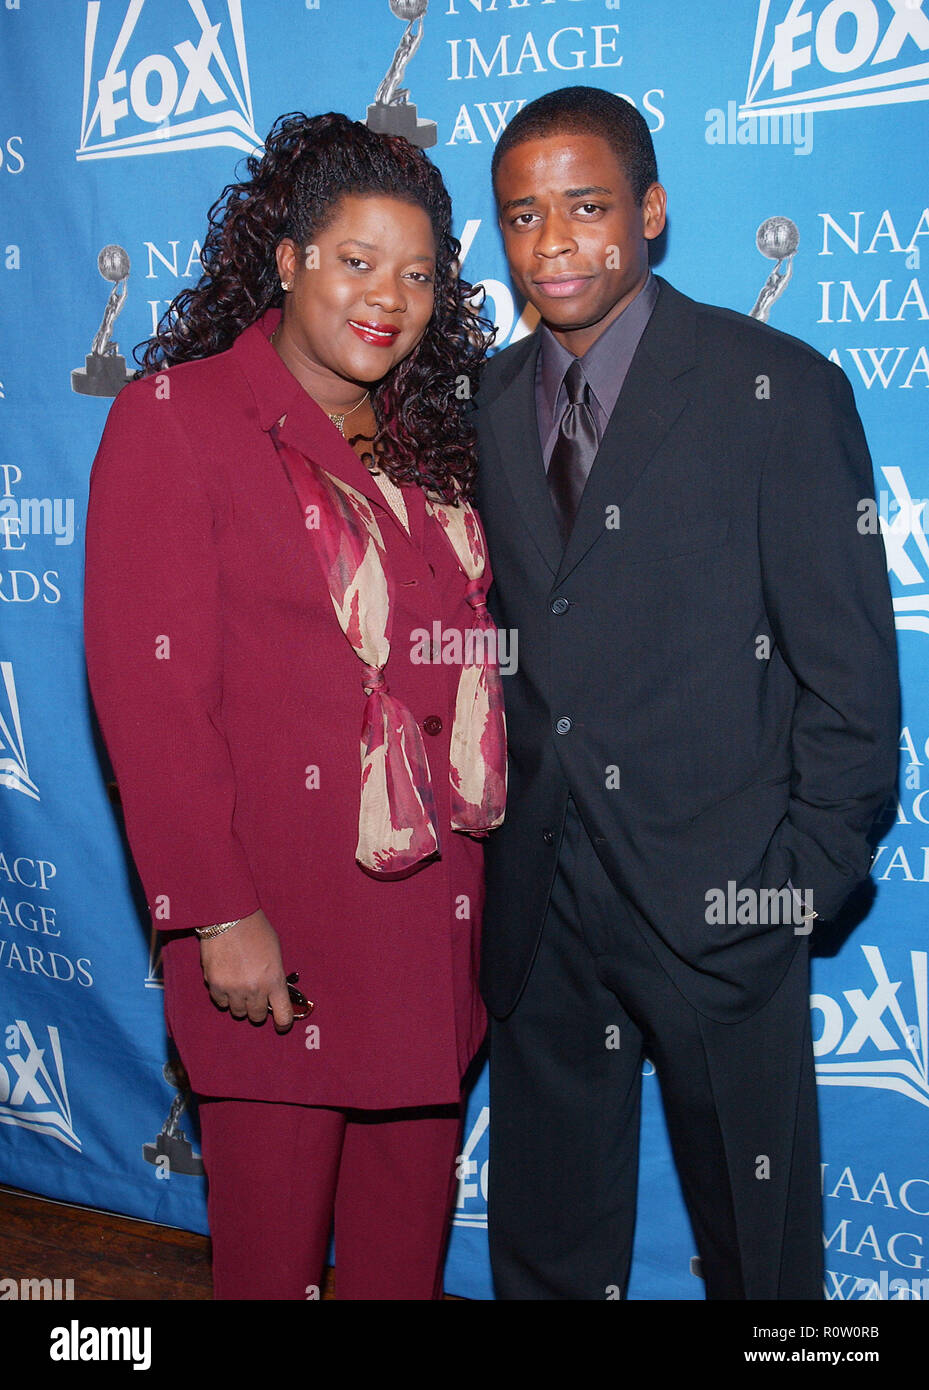 Loretta Devine and Dule Hill arriving at the 33rd luncheon NAACP Image Awards nomination  at the House of Blues in Los Angeles. January 26, 2002.      - Stock Image